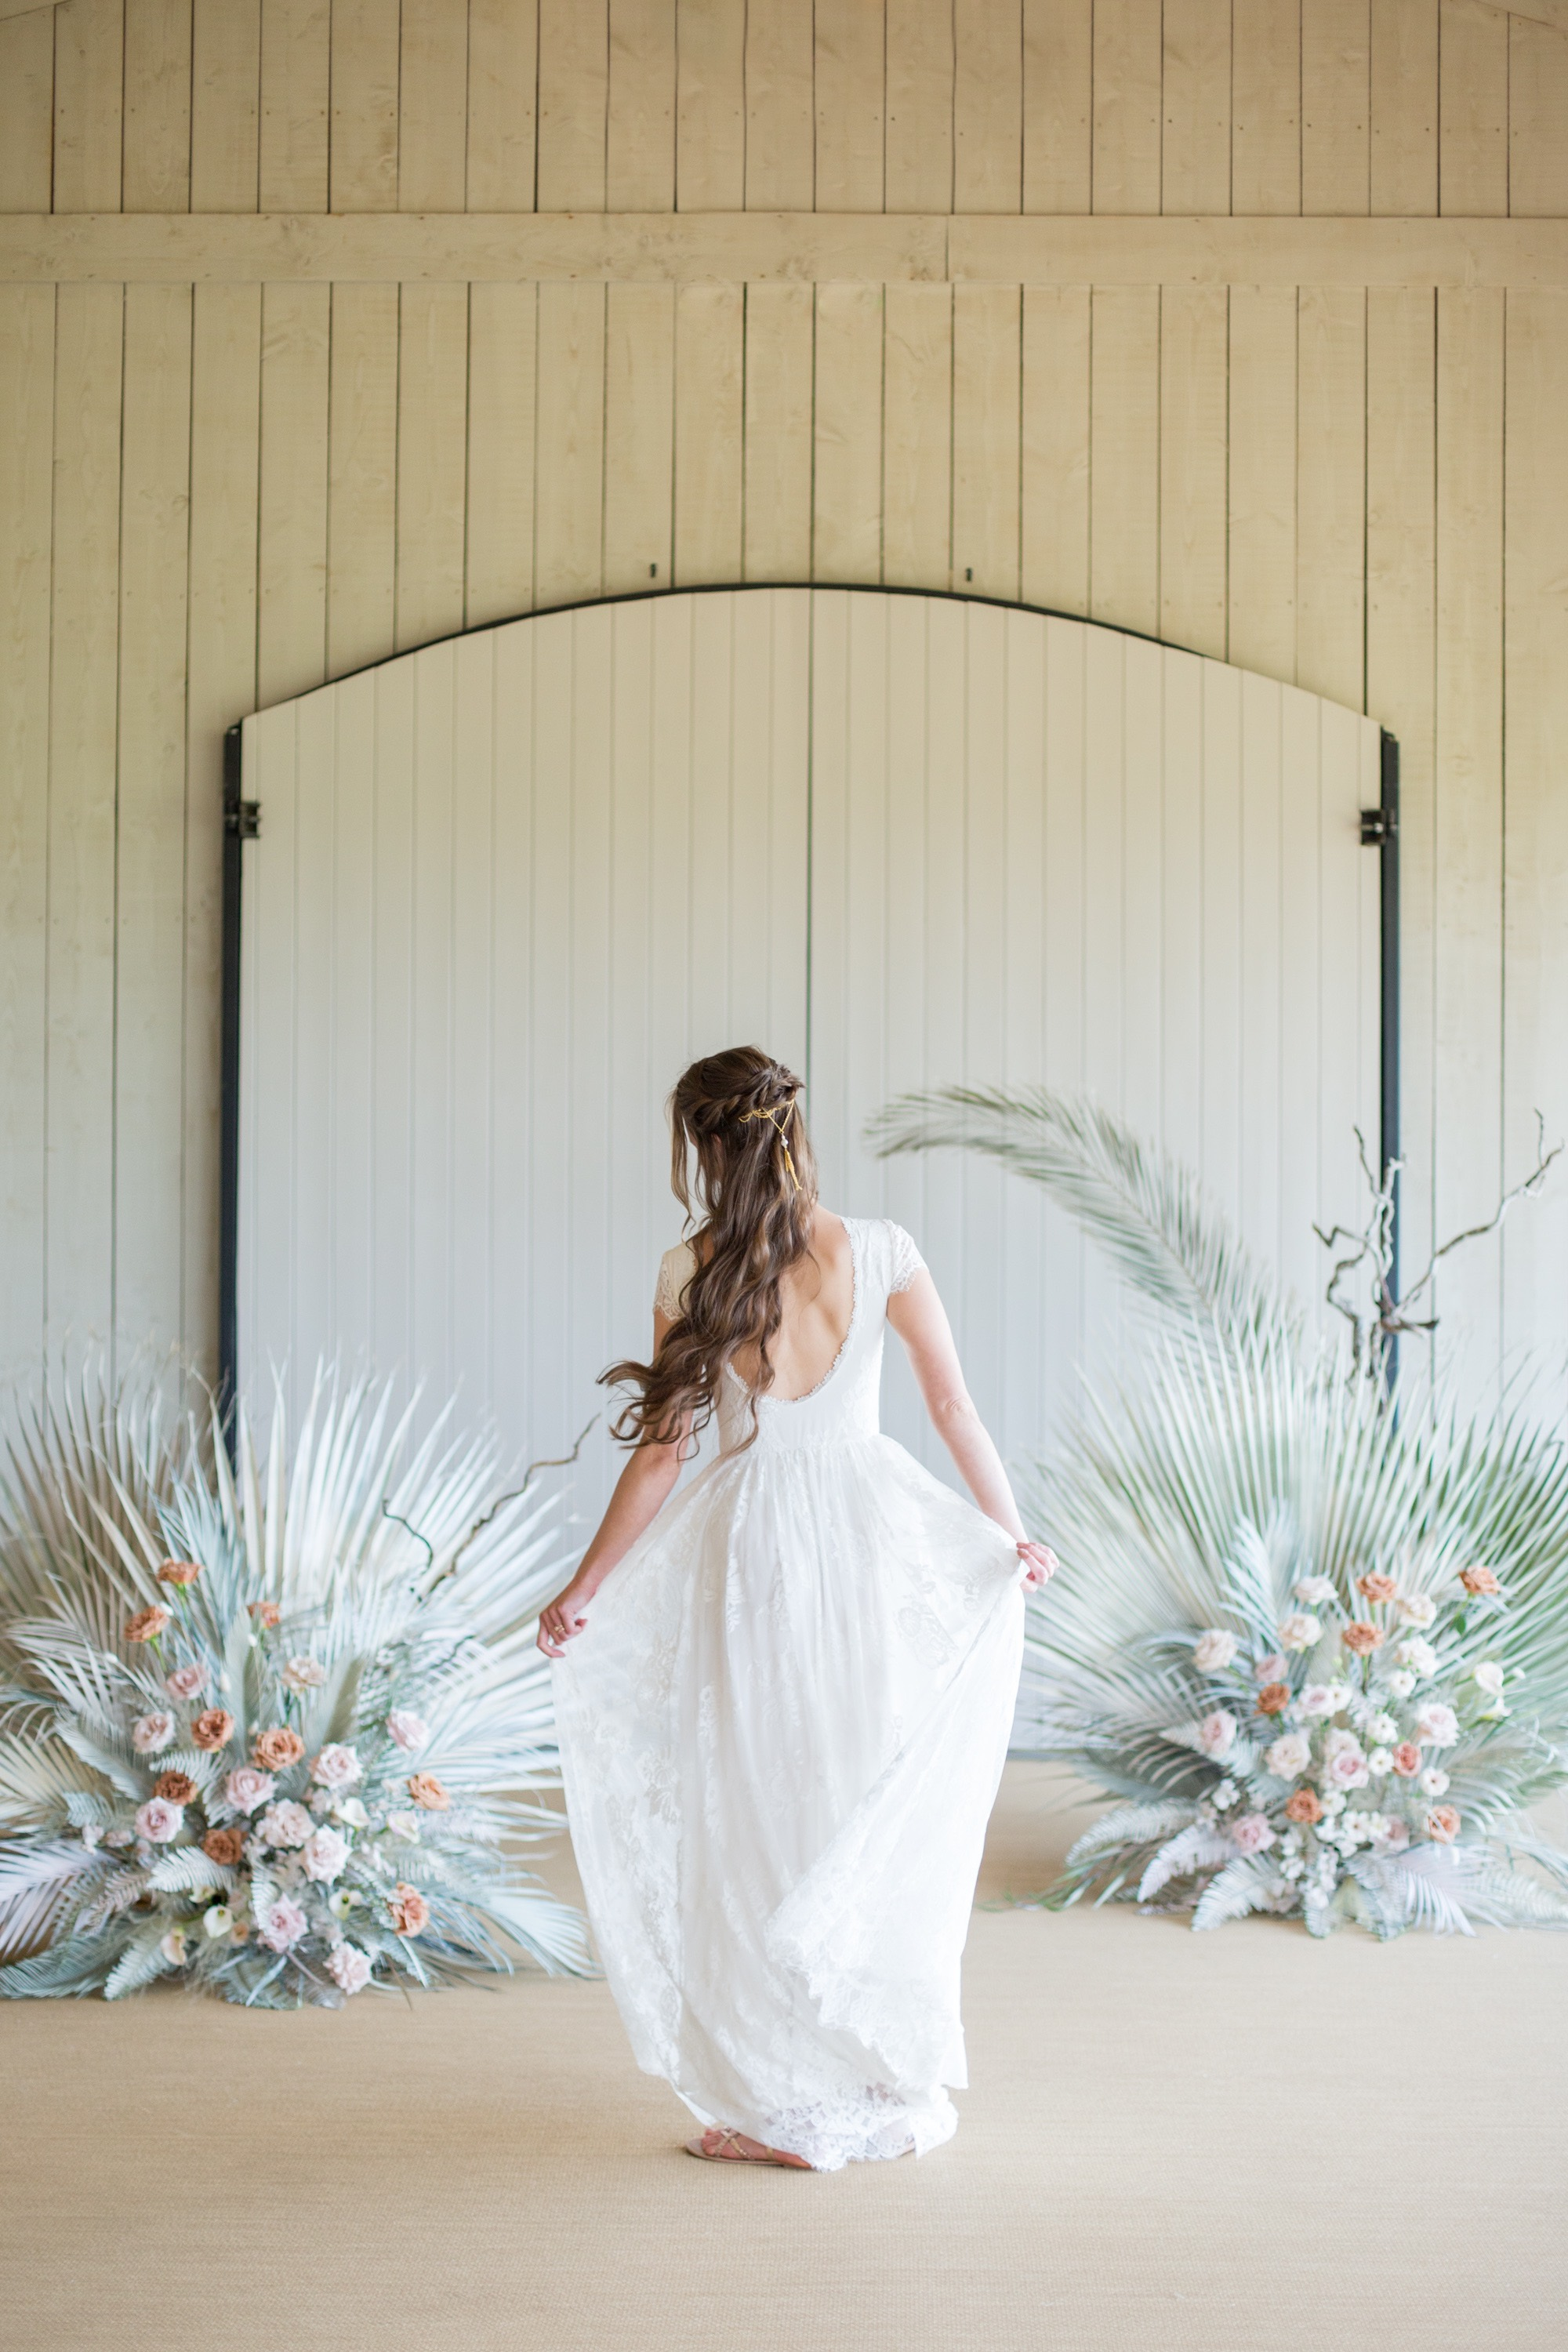 Flowing movement in this romantic, relaxed wedding dress